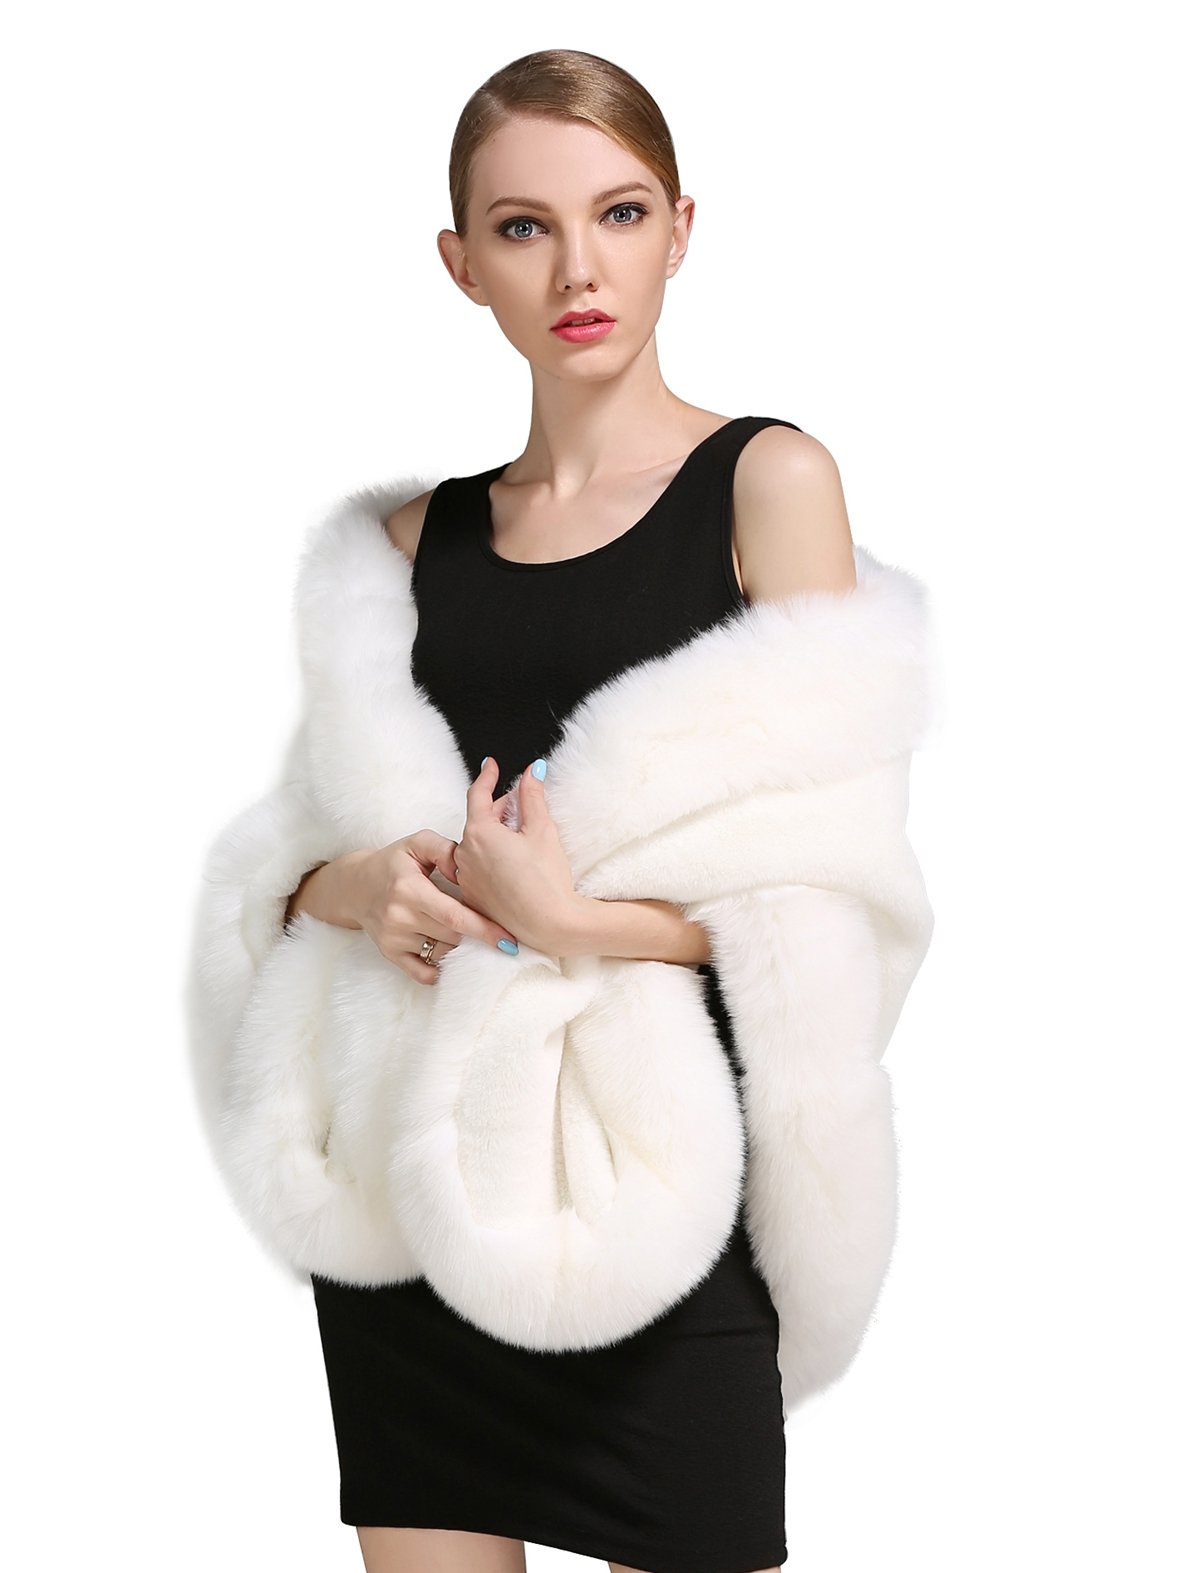 BEAUTELICATE Women's Faux Fur Shawl Wrap Stoles for Bridal Wedding Dresses-S64 Ivory by BEAUTELICATE